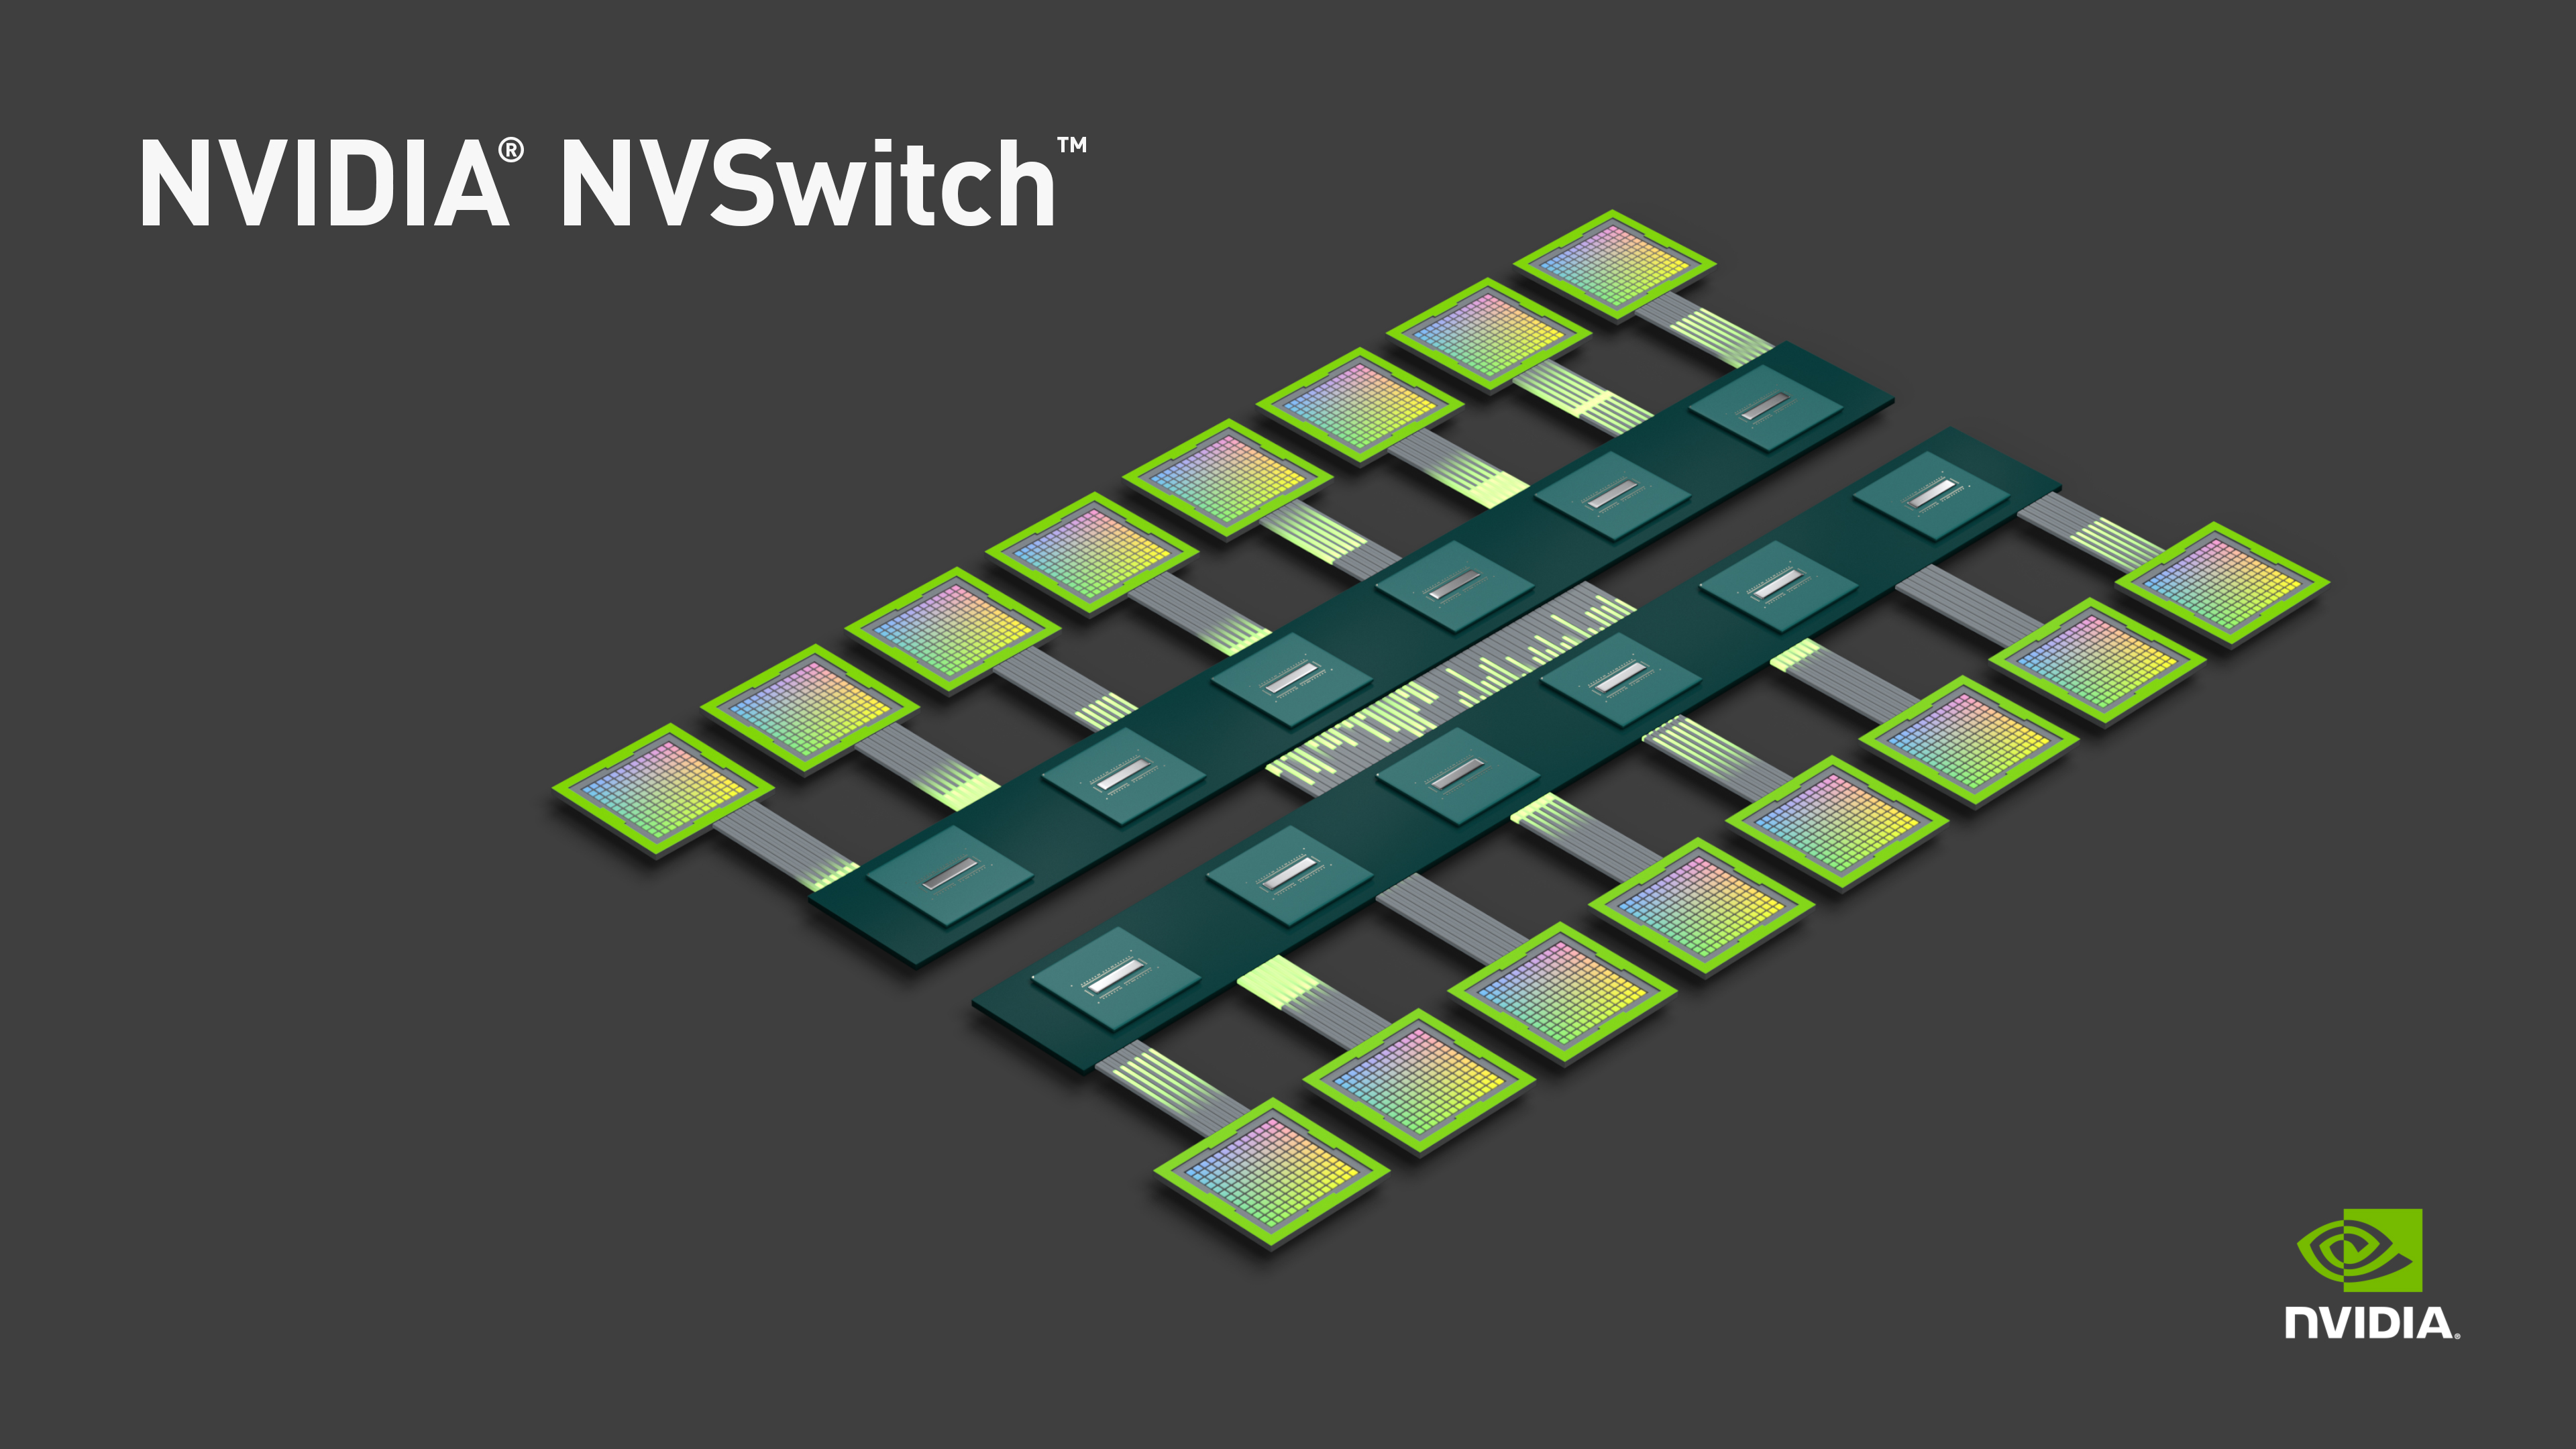 Nvidia Develops Nvlink Switch Nvswitch 18 Ports For Dgx 2 More The Tesla Notably Here Topology Of Means That All 16 Gpus Are Able To Pool Their Memory Into A Unified Space Though With Usual Tradeoffs